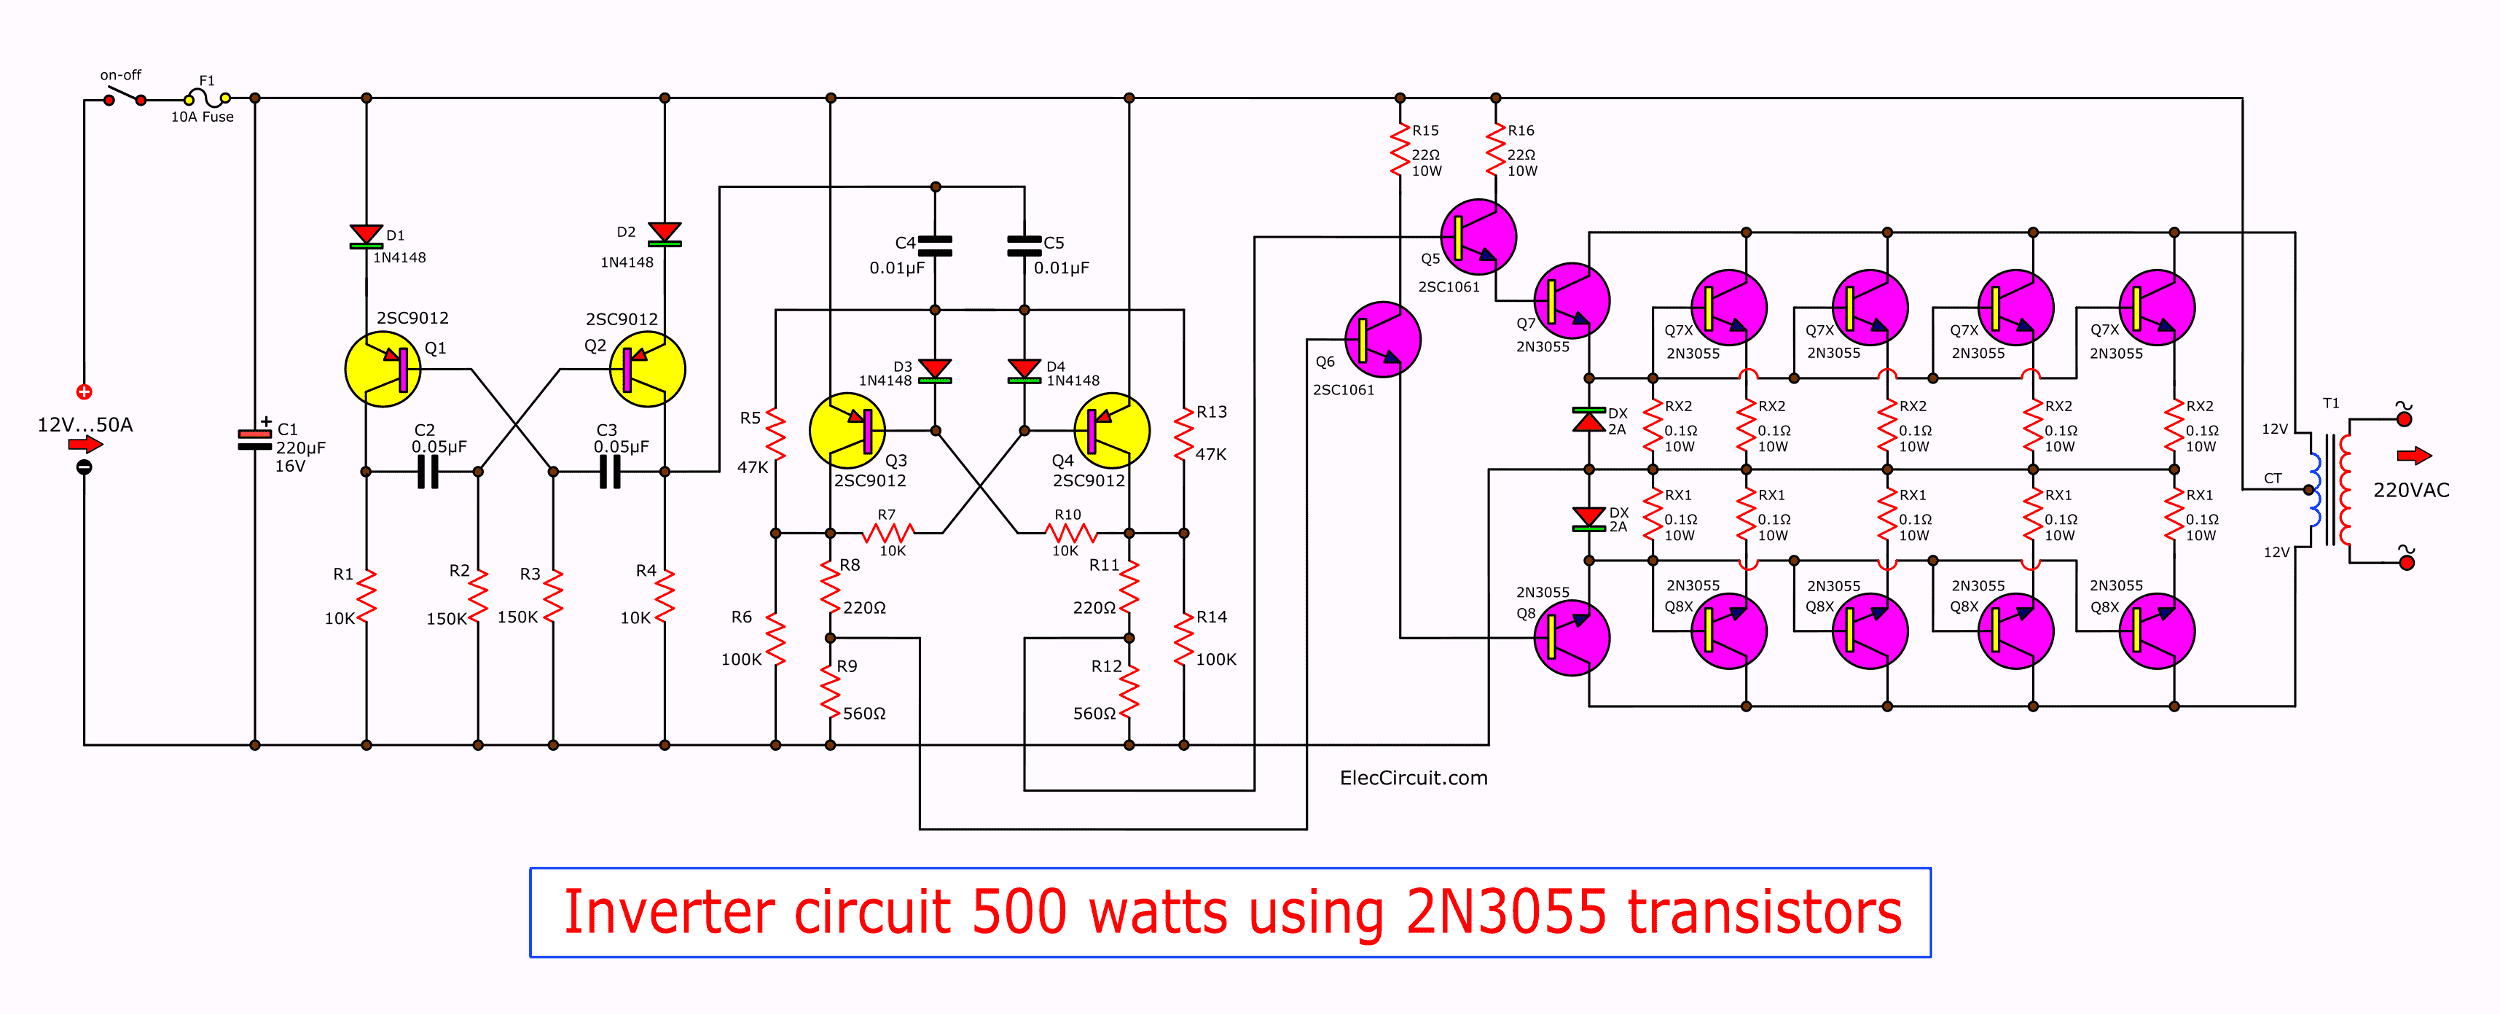 Wiring diagram inverter complete wiring diagrams inverter circuit 12 volt to 220 volt at 500w eleccircuit com rh eleccircuit com wiring diagram inverter wiring diagram inverter asfbconference2016